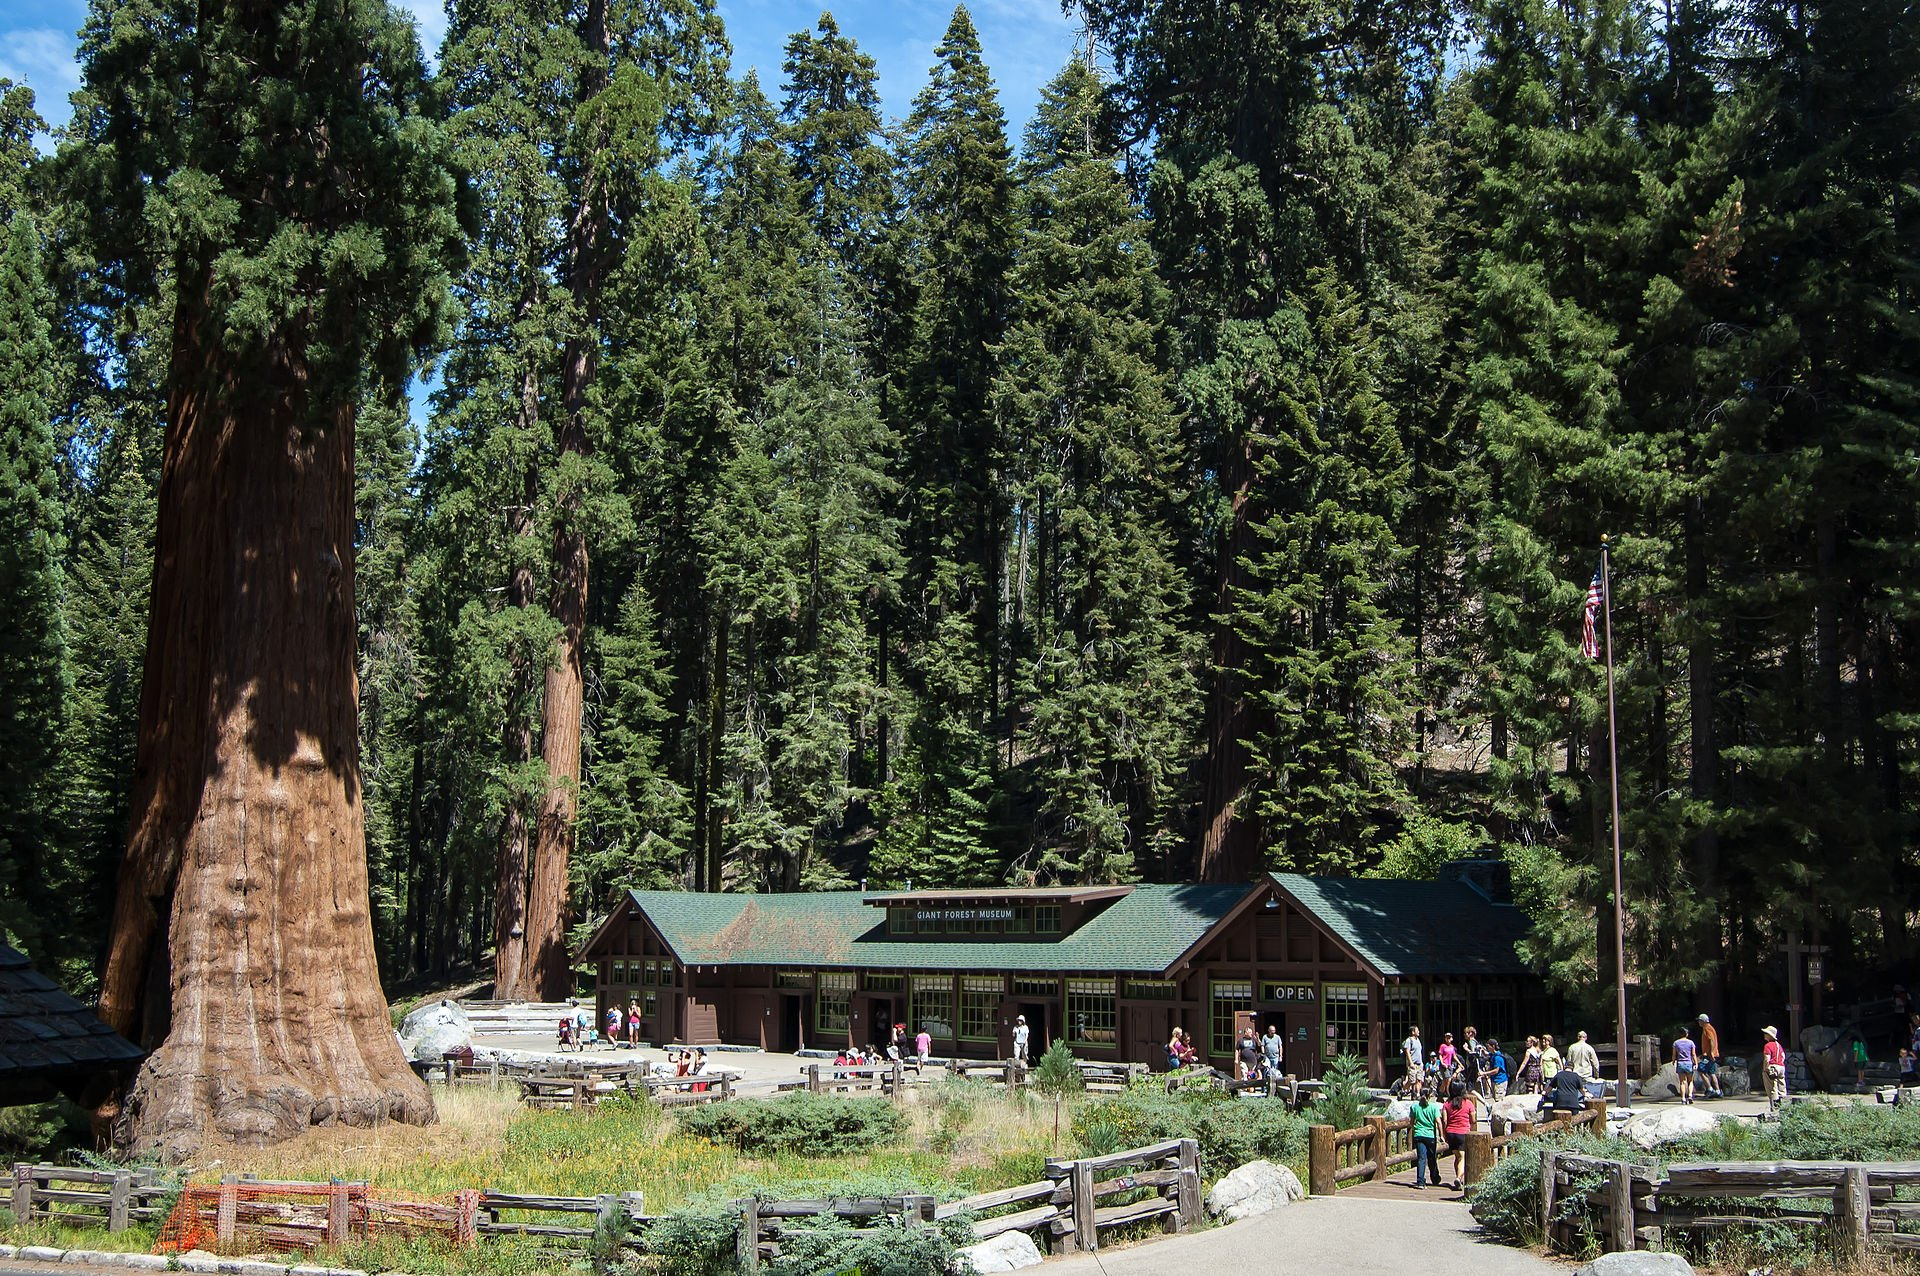 The Giant Forest Museum has exhibits about the history of Sequoia National Park.